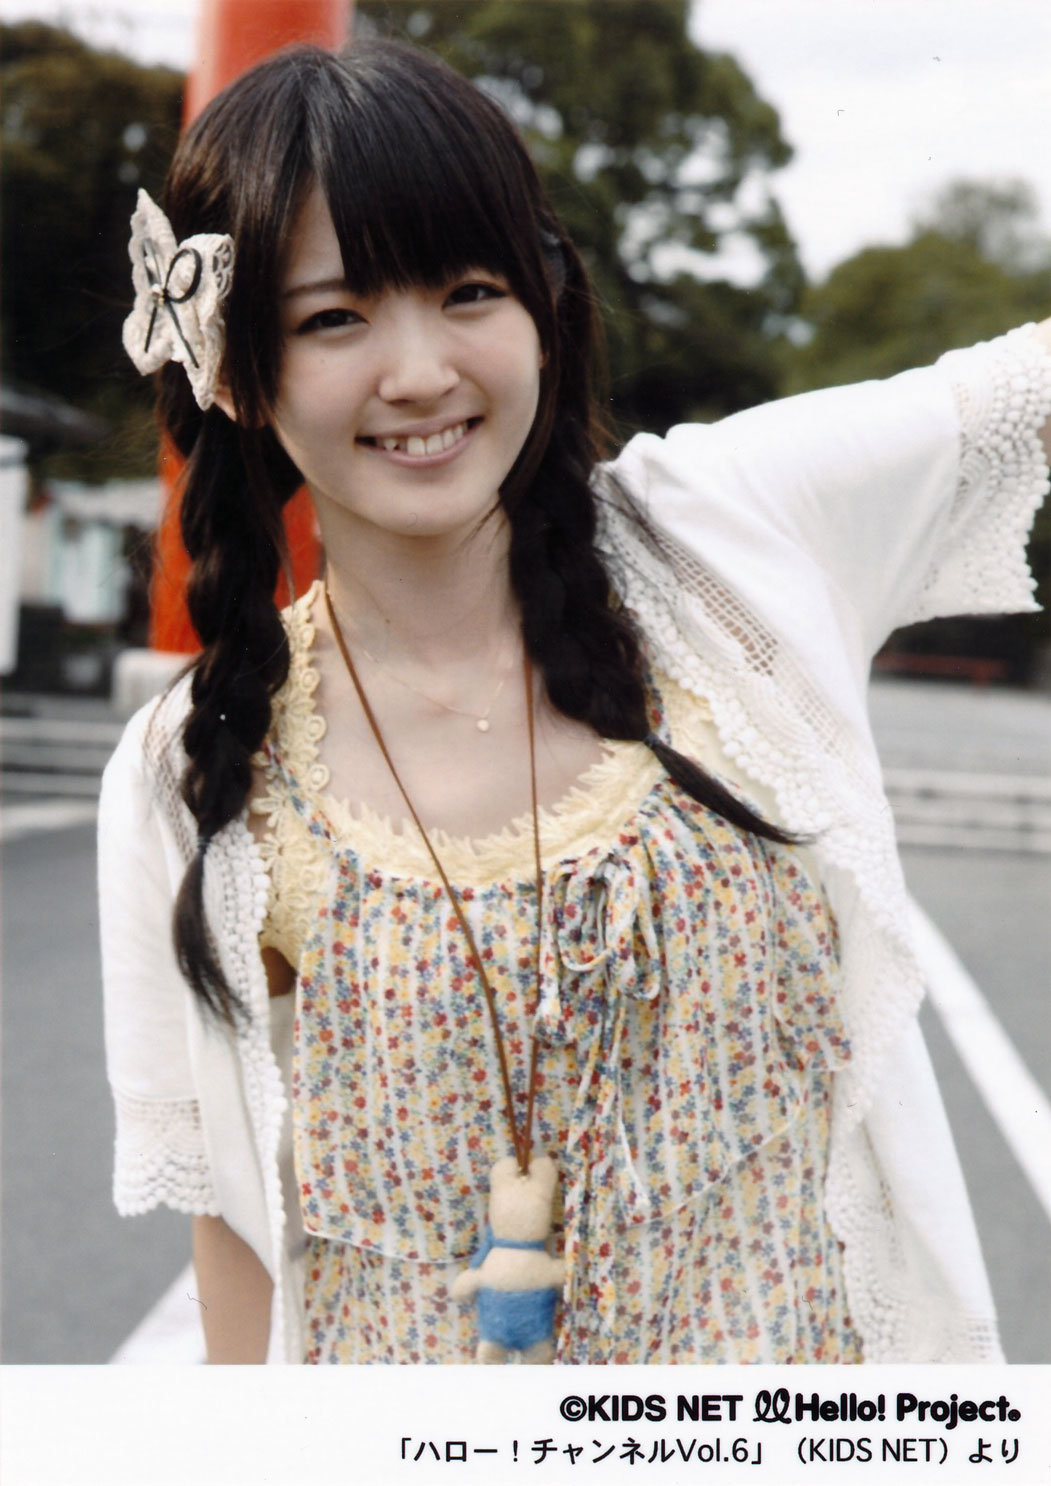 Airi suzuki Japanese Top Model, my idol